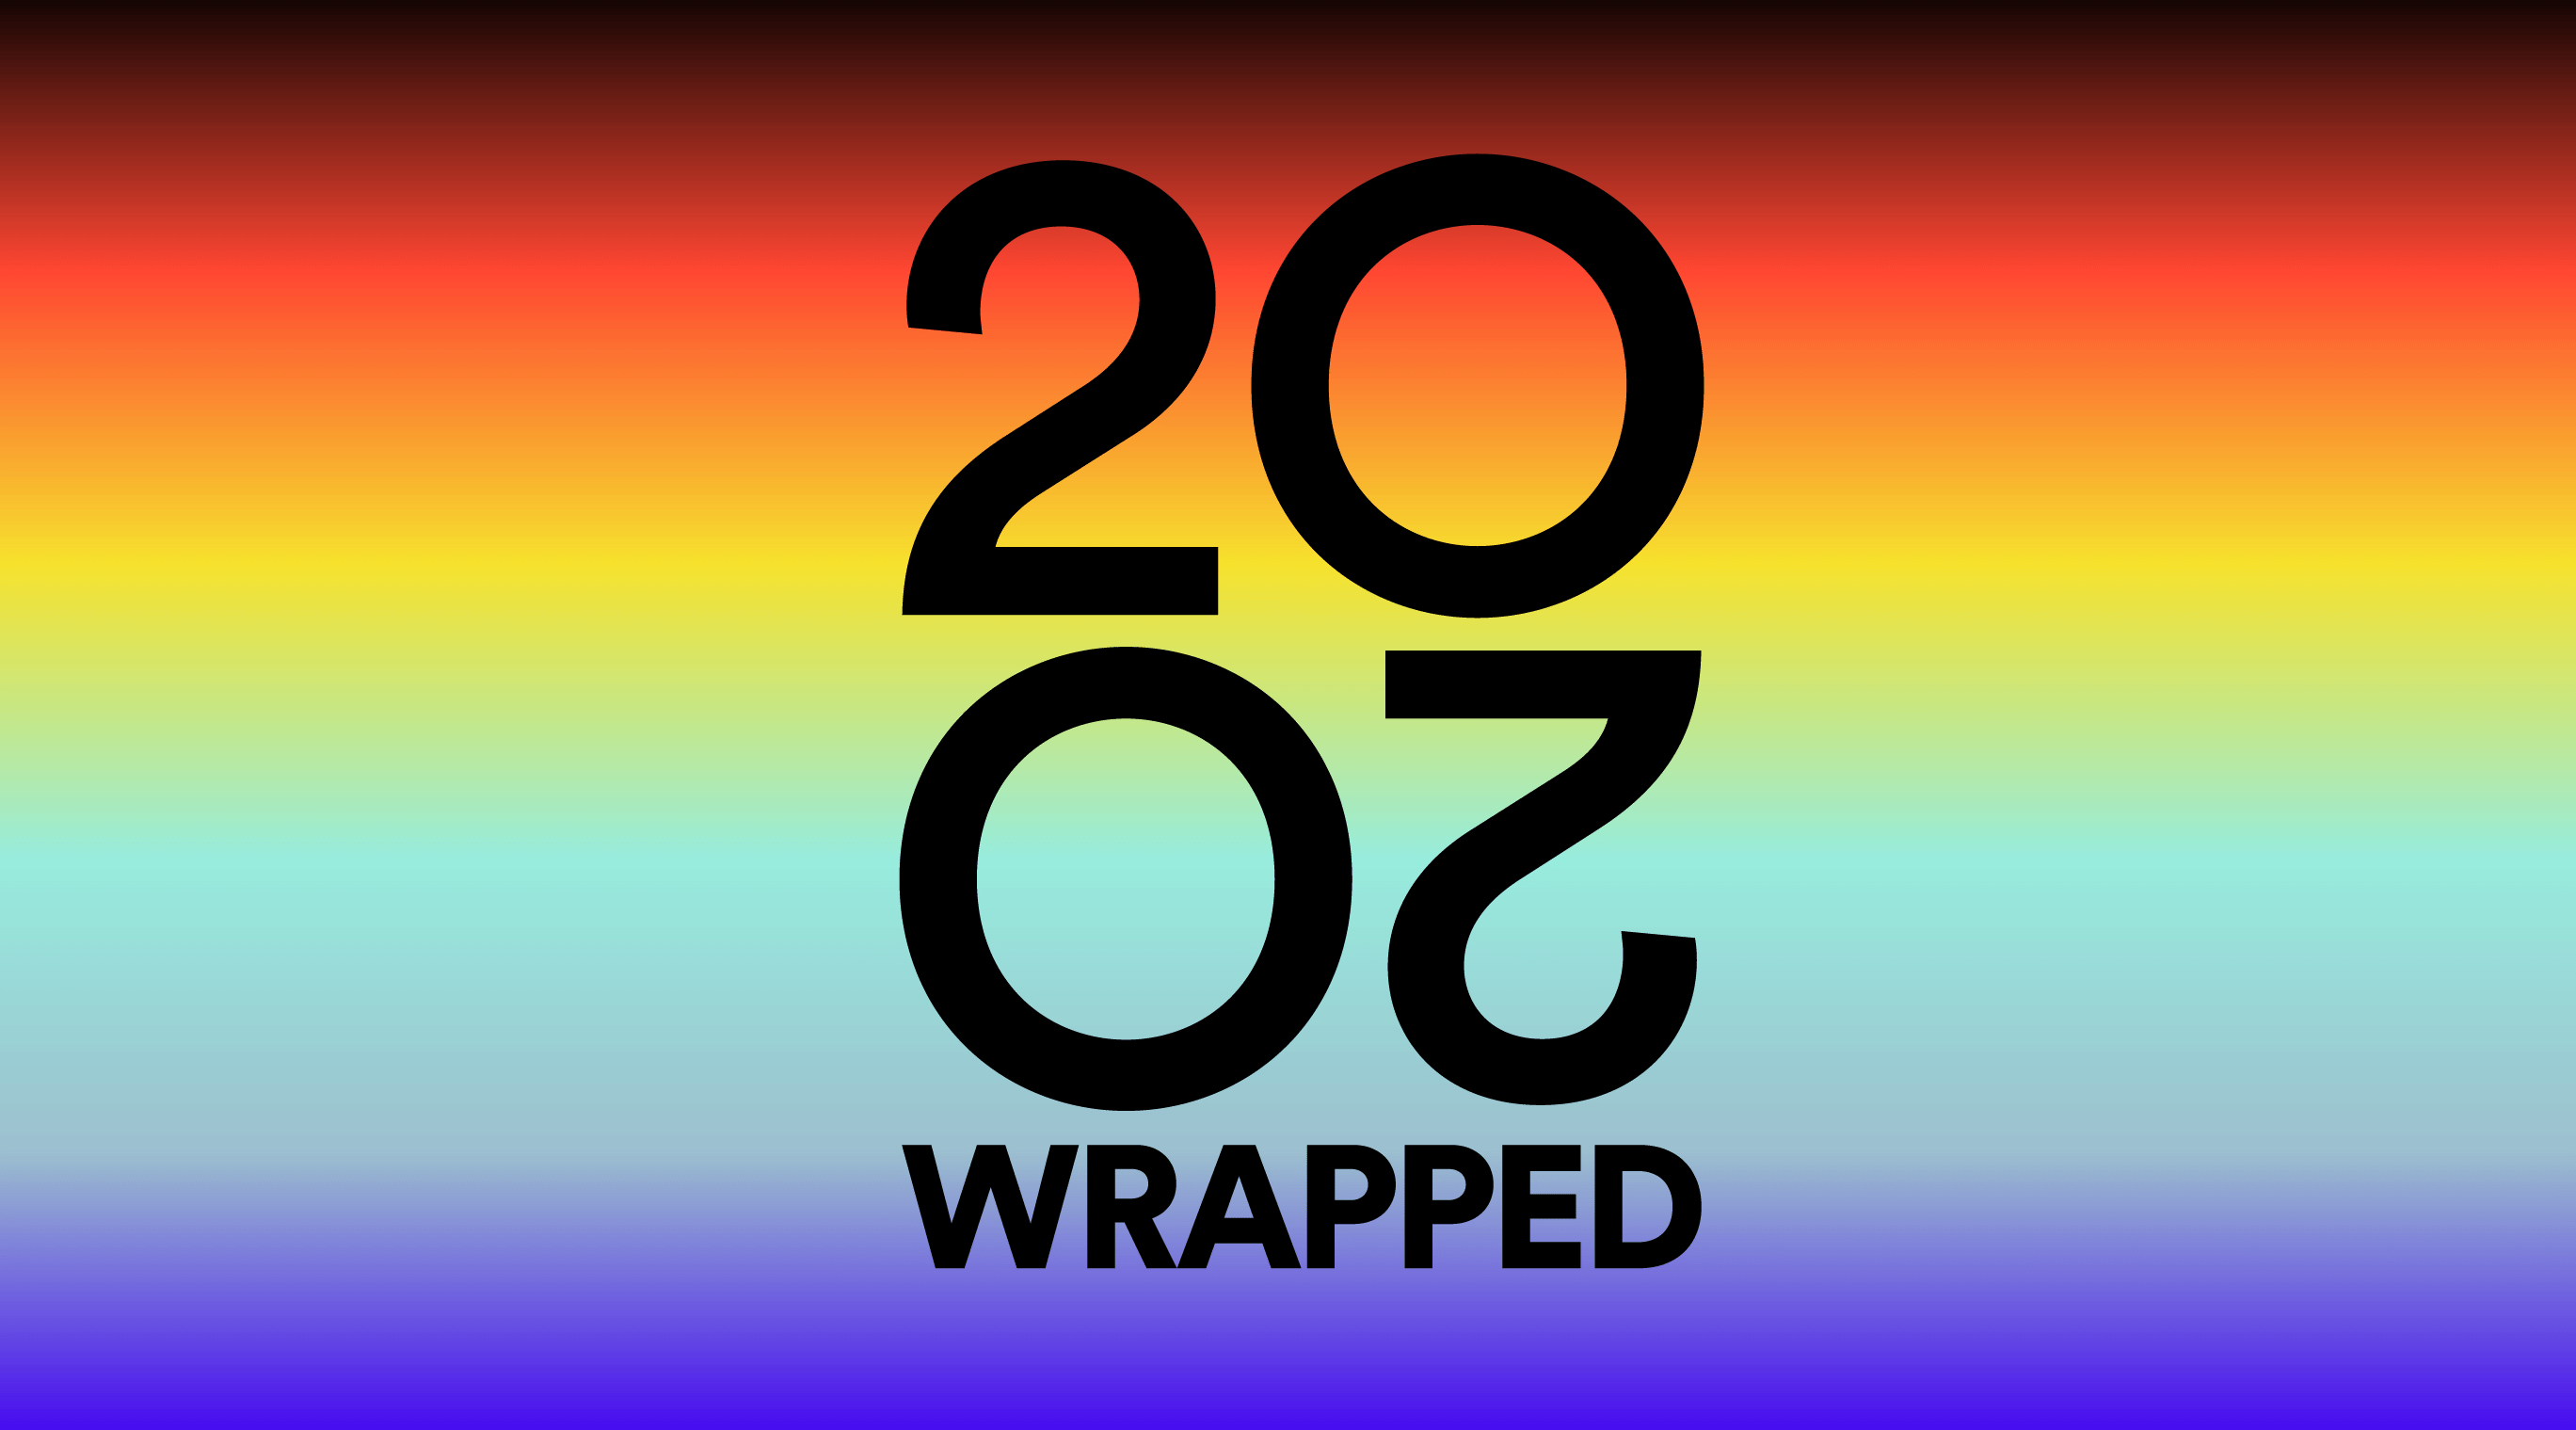 Spotify 2020 Wrapped